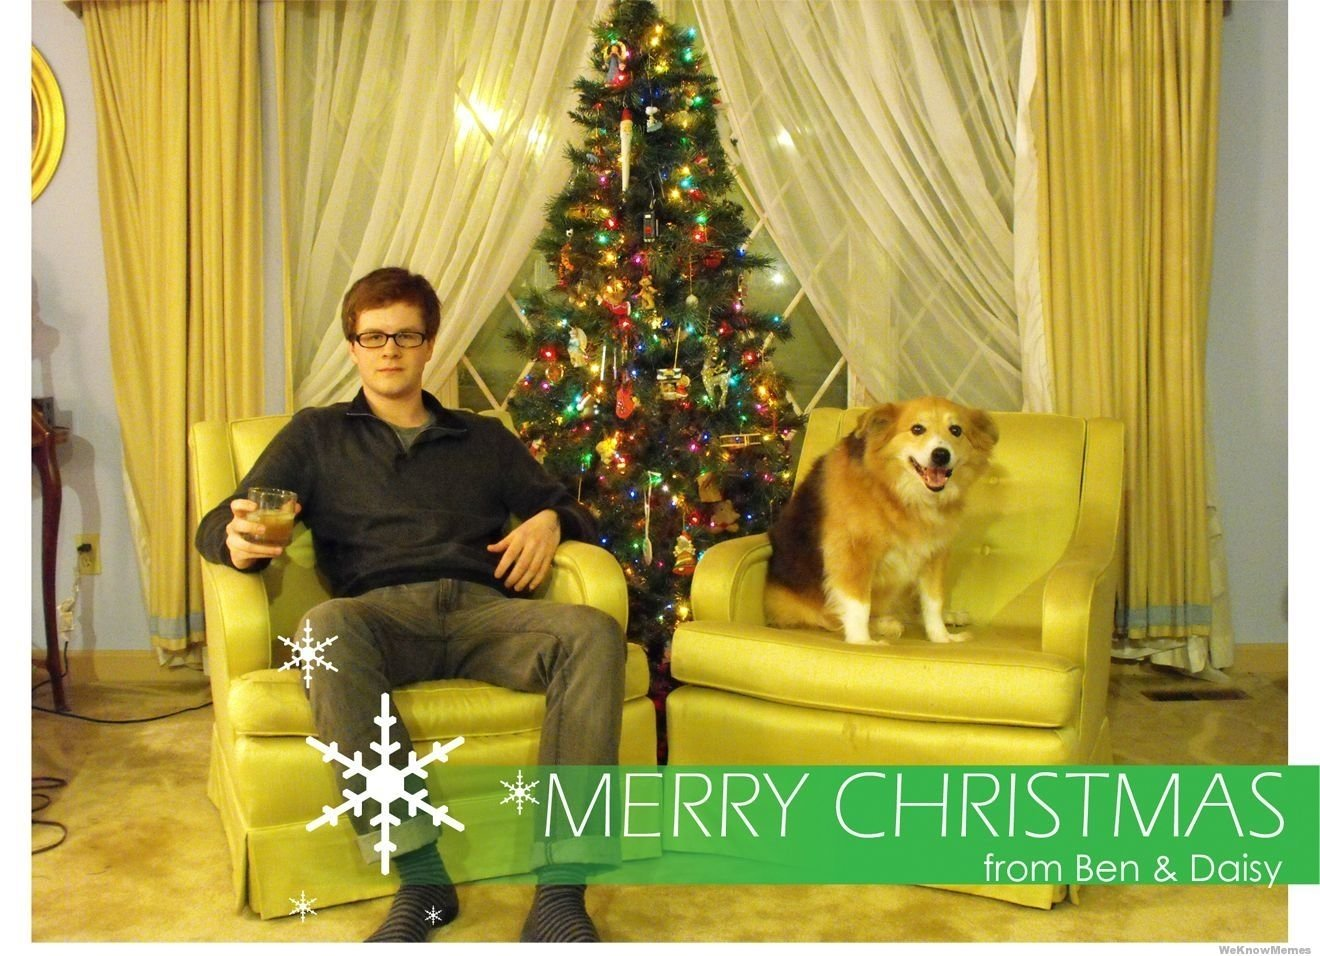 10 Attractive Christmas Card Ideas With Dogs funny christmas card ideas dogs cards ben daisy dma homes 42549 2021